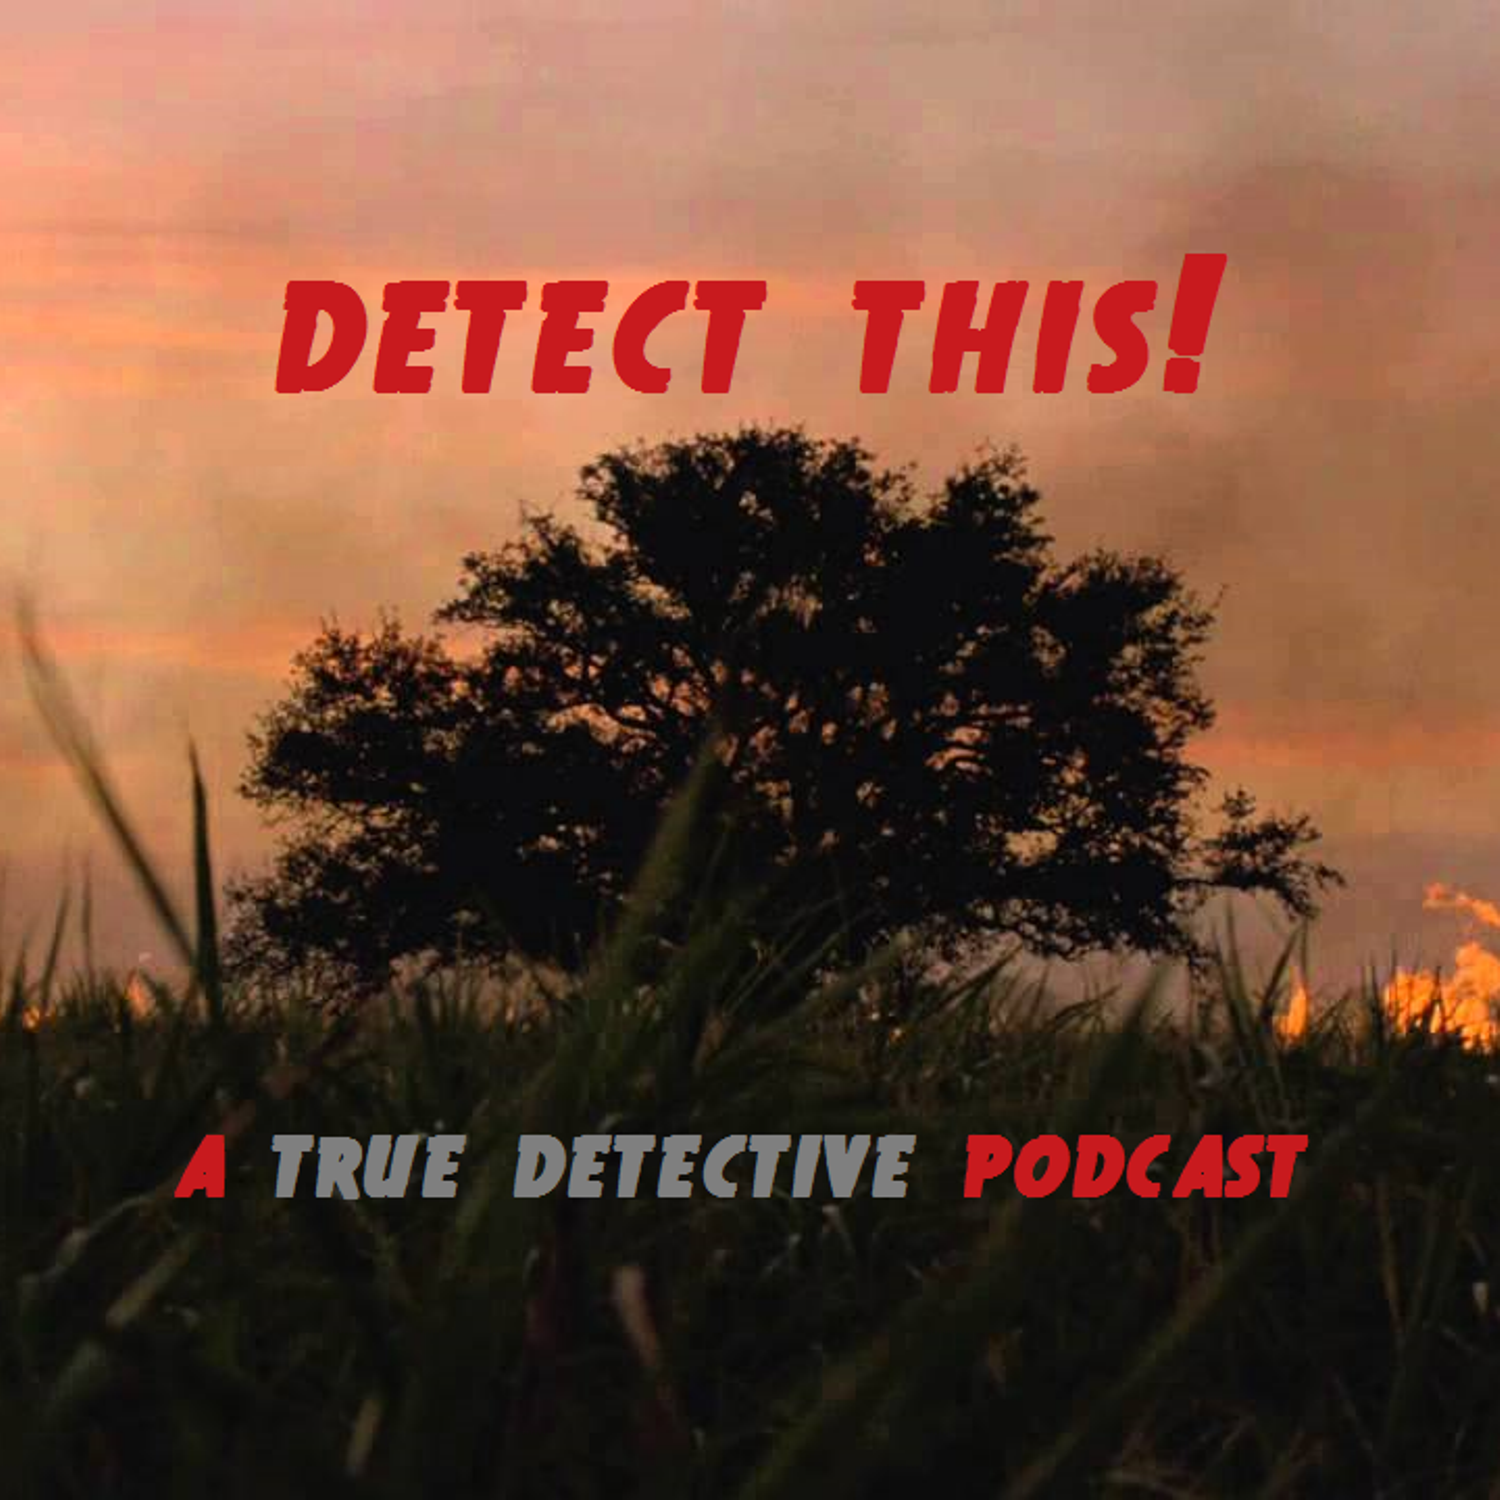 Detect This!: A True Detective Podcast